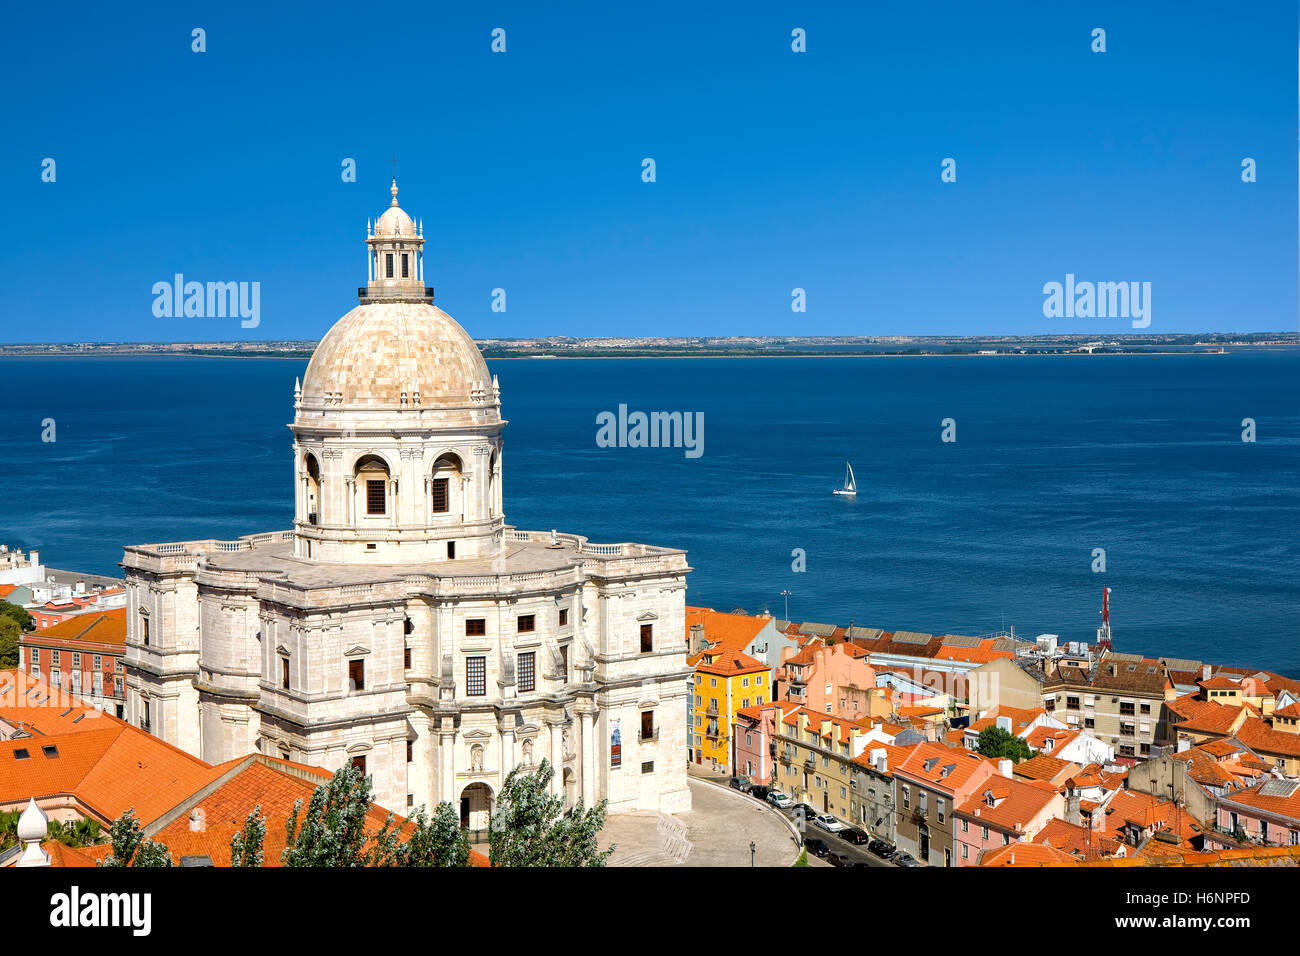 The Panteao Nacional and the rooftops of Alfama, Lisbon - Stock Image